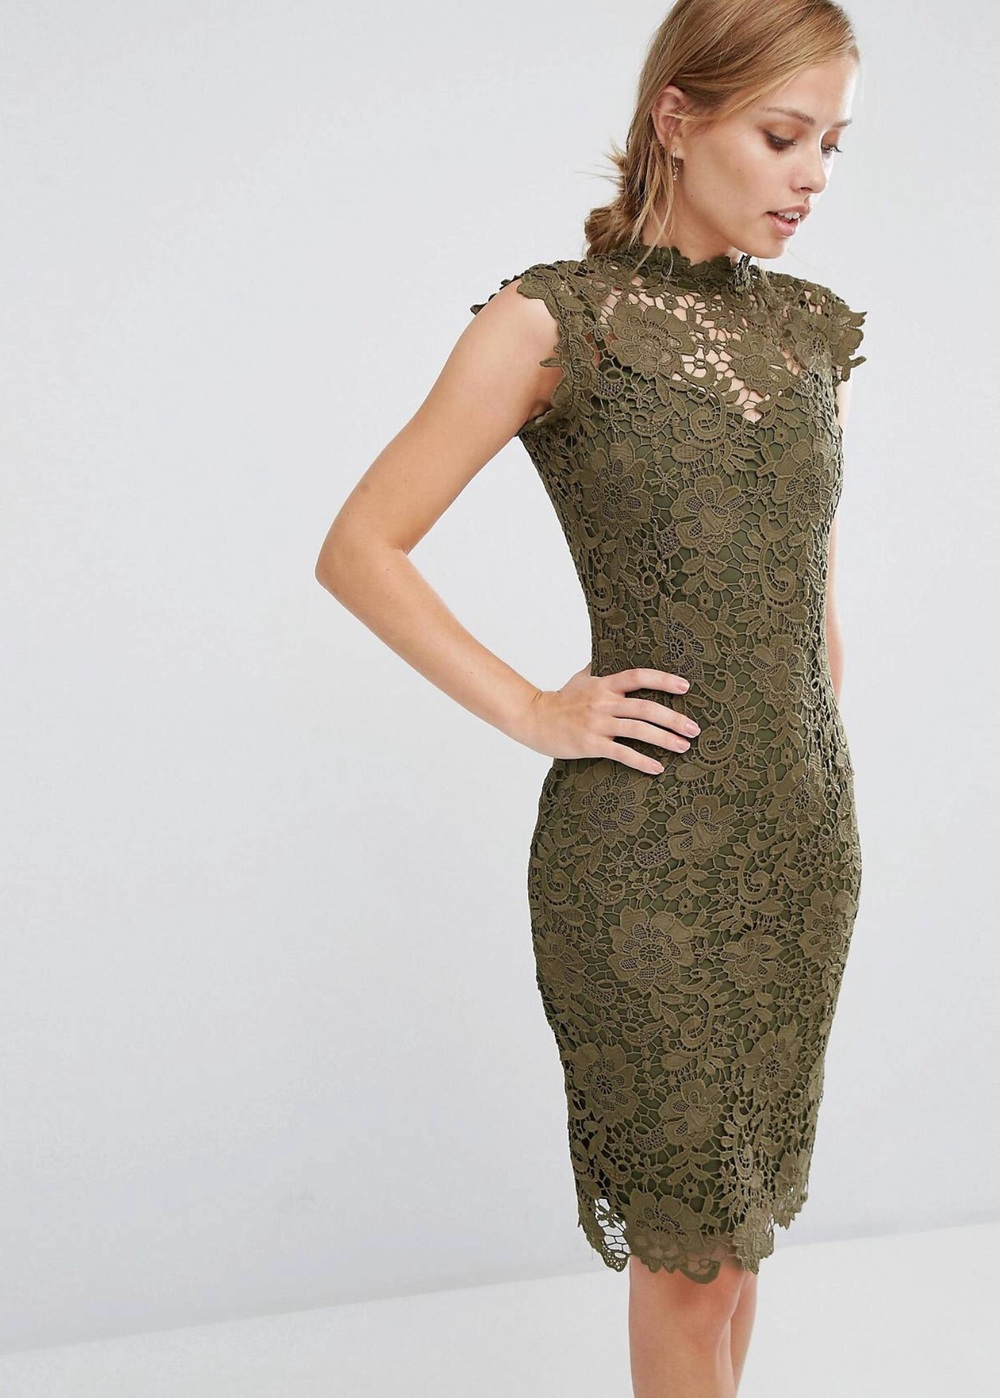 Green Lace dress from Asos 511,54 Dkk